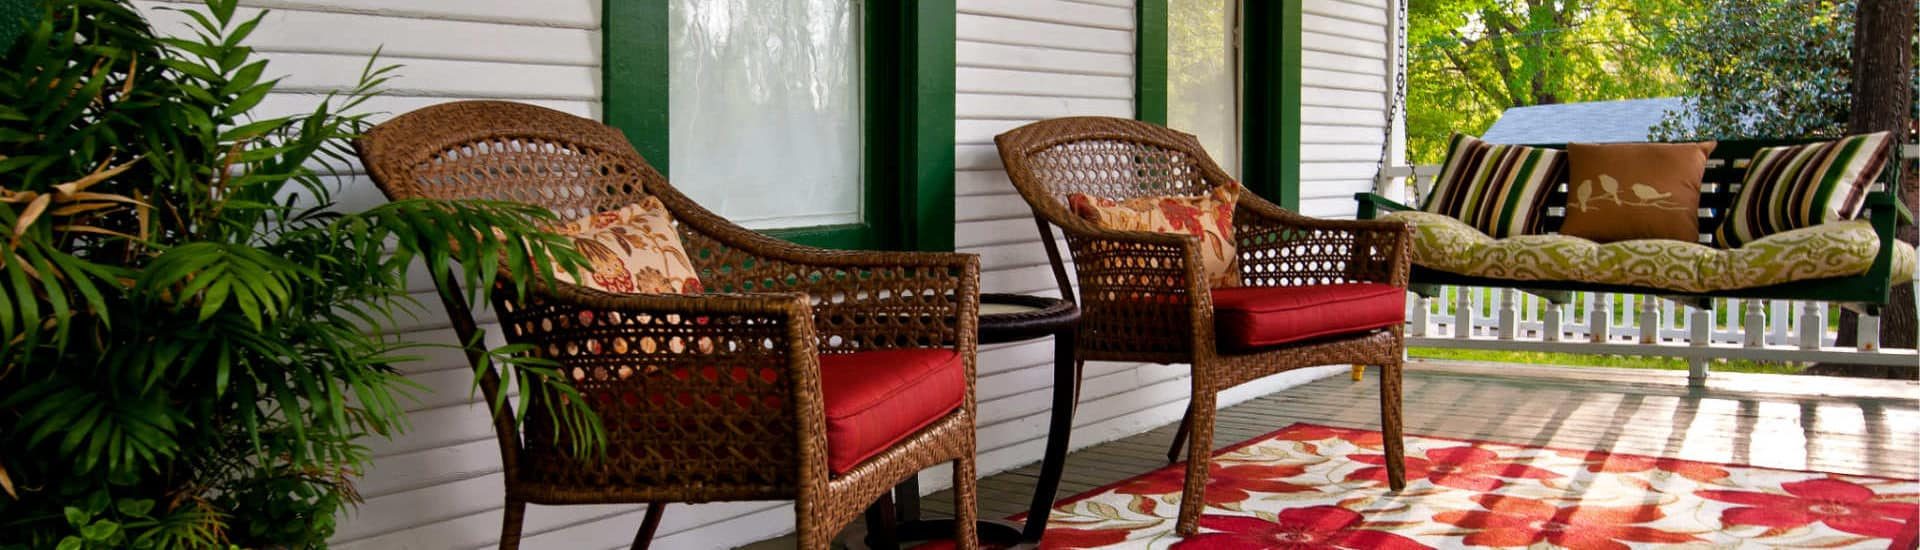 chairs on red flower rug and a porch swing